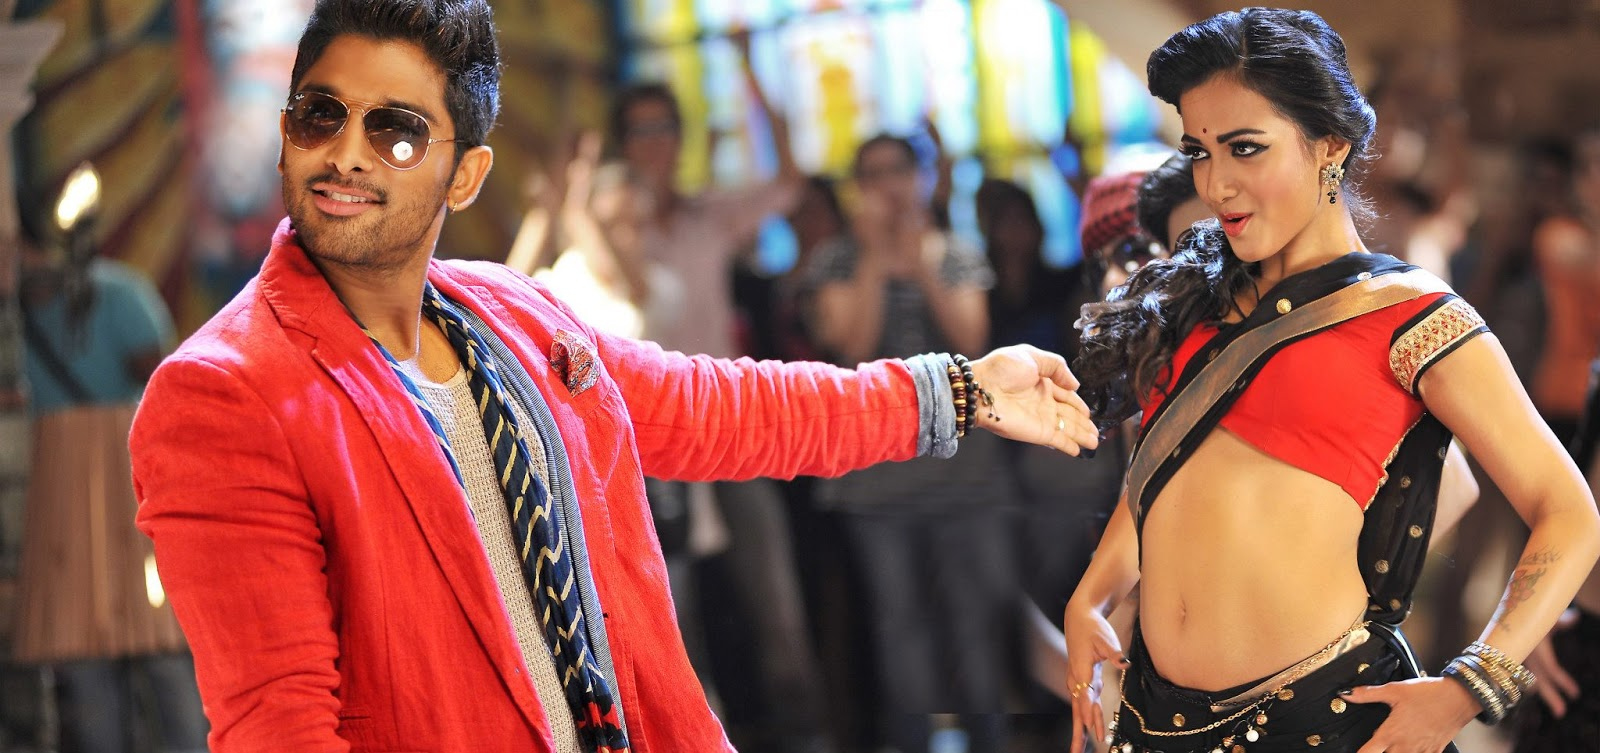 Iddarammayiltho Top Lesi Poddi Song Stills (1)